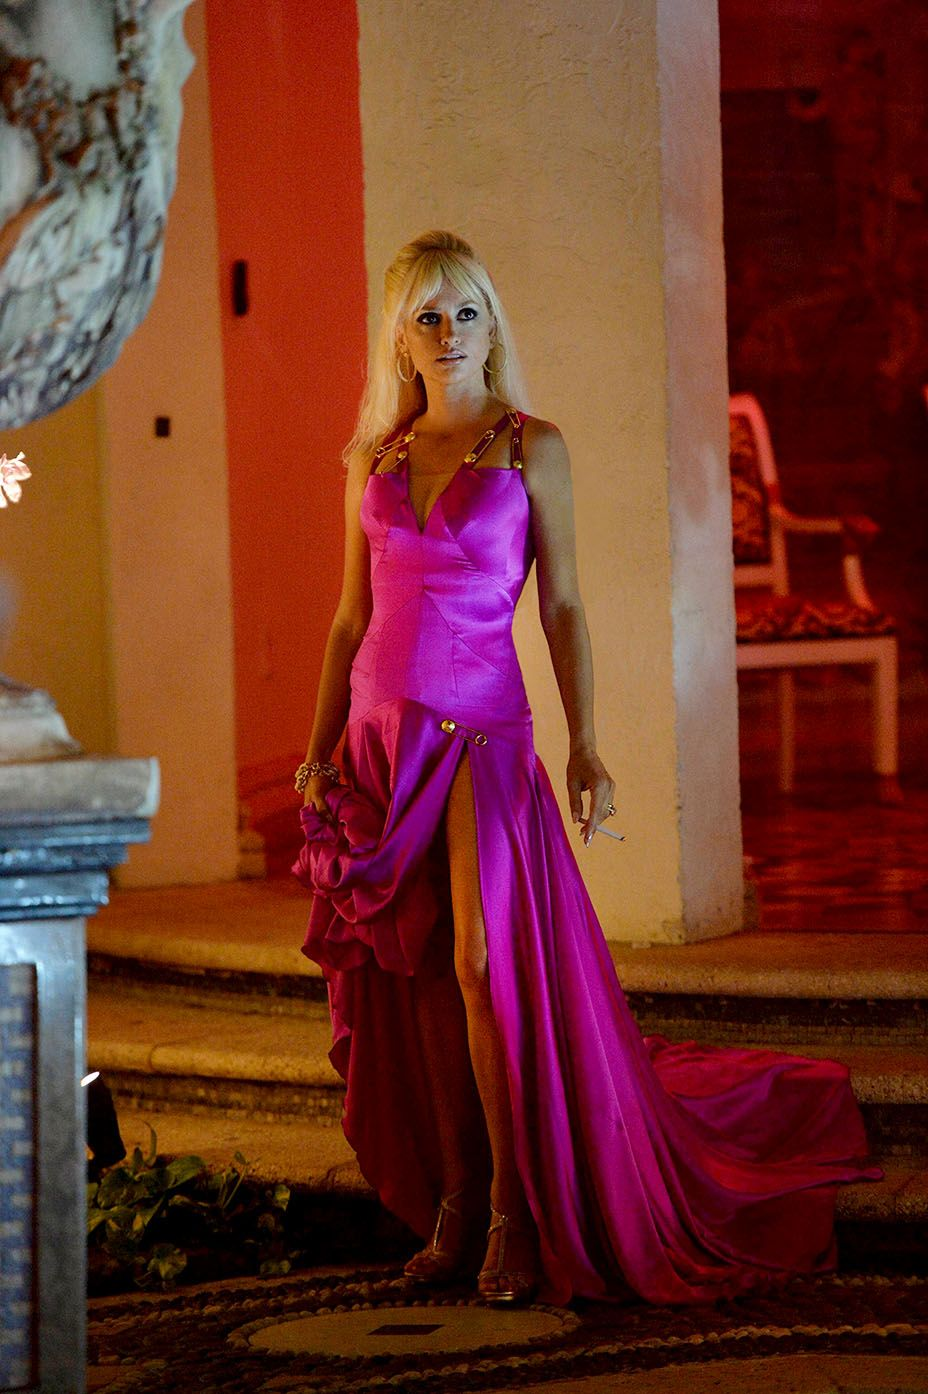 Penelope Cruz as Donatella Versace wears a pink gown inspired by a 1996  Versace design. d5227deb9